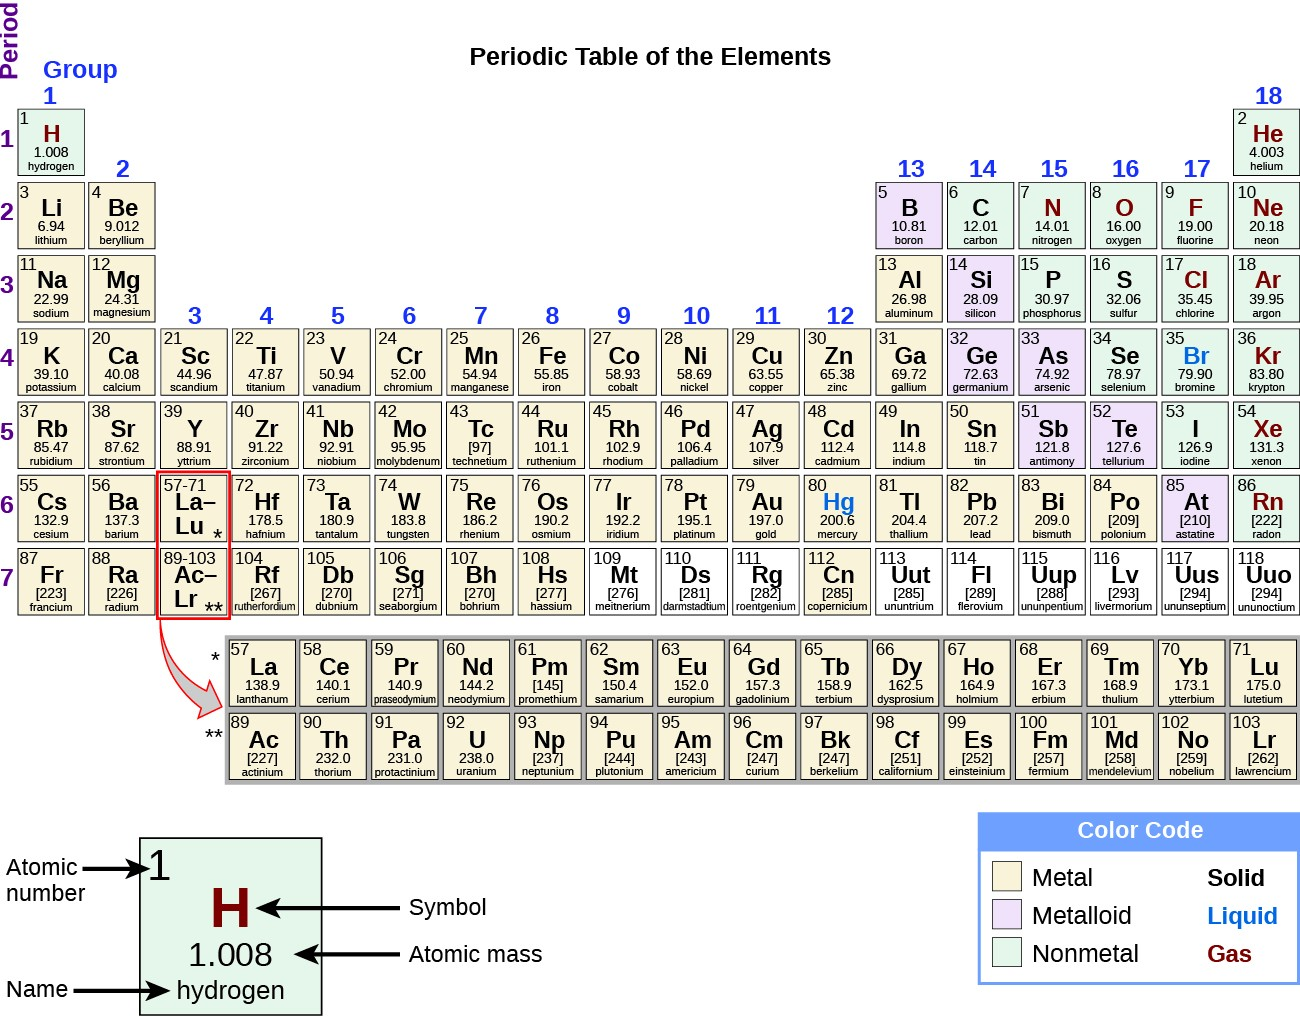 grouping elements with similar chemical properties Periodic table of the elements: periodic table of the elements, the organized array of all the chemical elements in order of increasing atomic number when the elements are thus arranged, there is a recurring pattern called the 'periodic law' in their properties, in which elements in the same column (group) have similar properties.